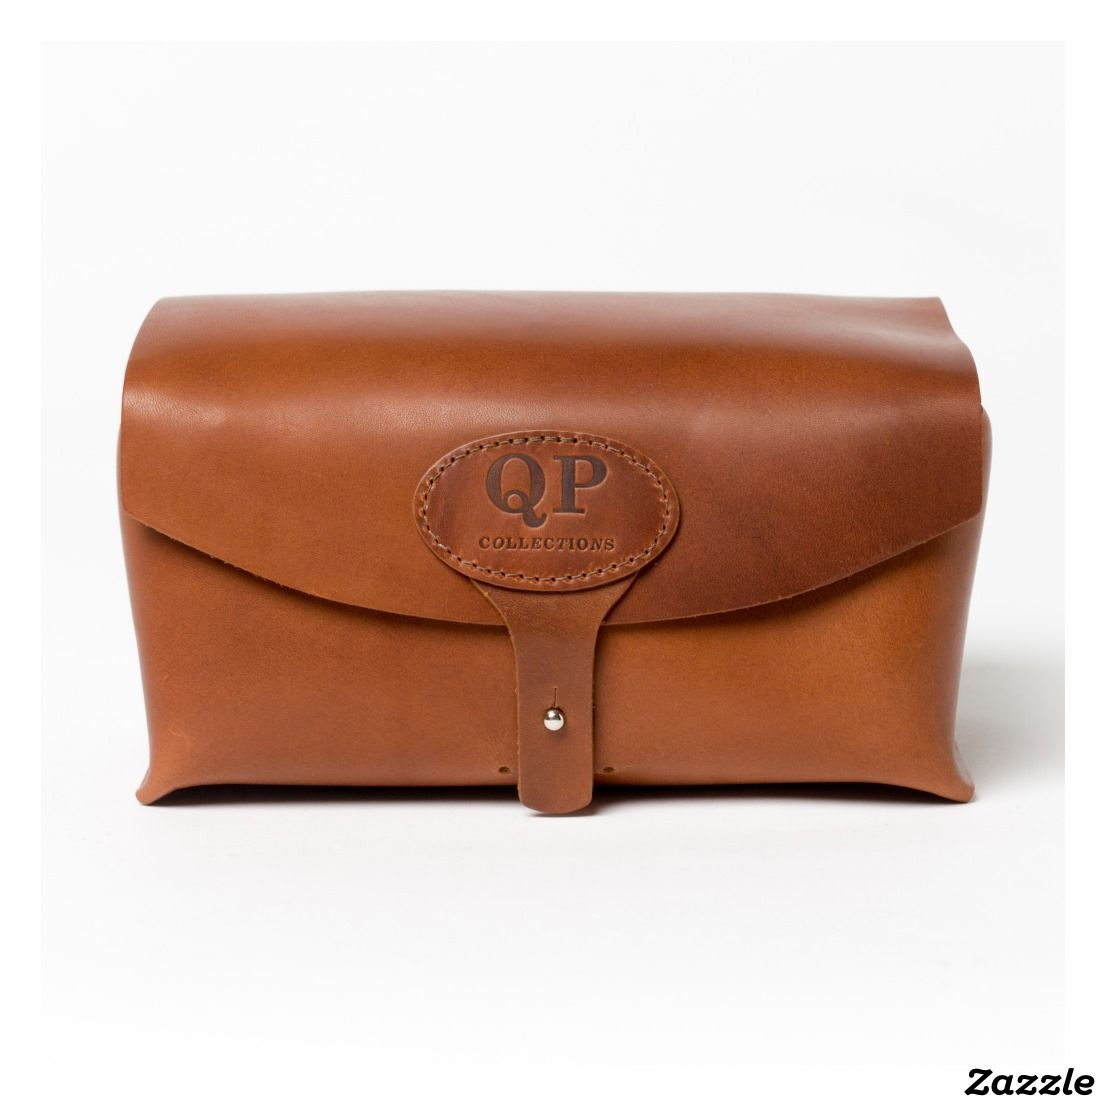 4020ede469bf Light Leather Toiletry Kit with Monogrammed Handle